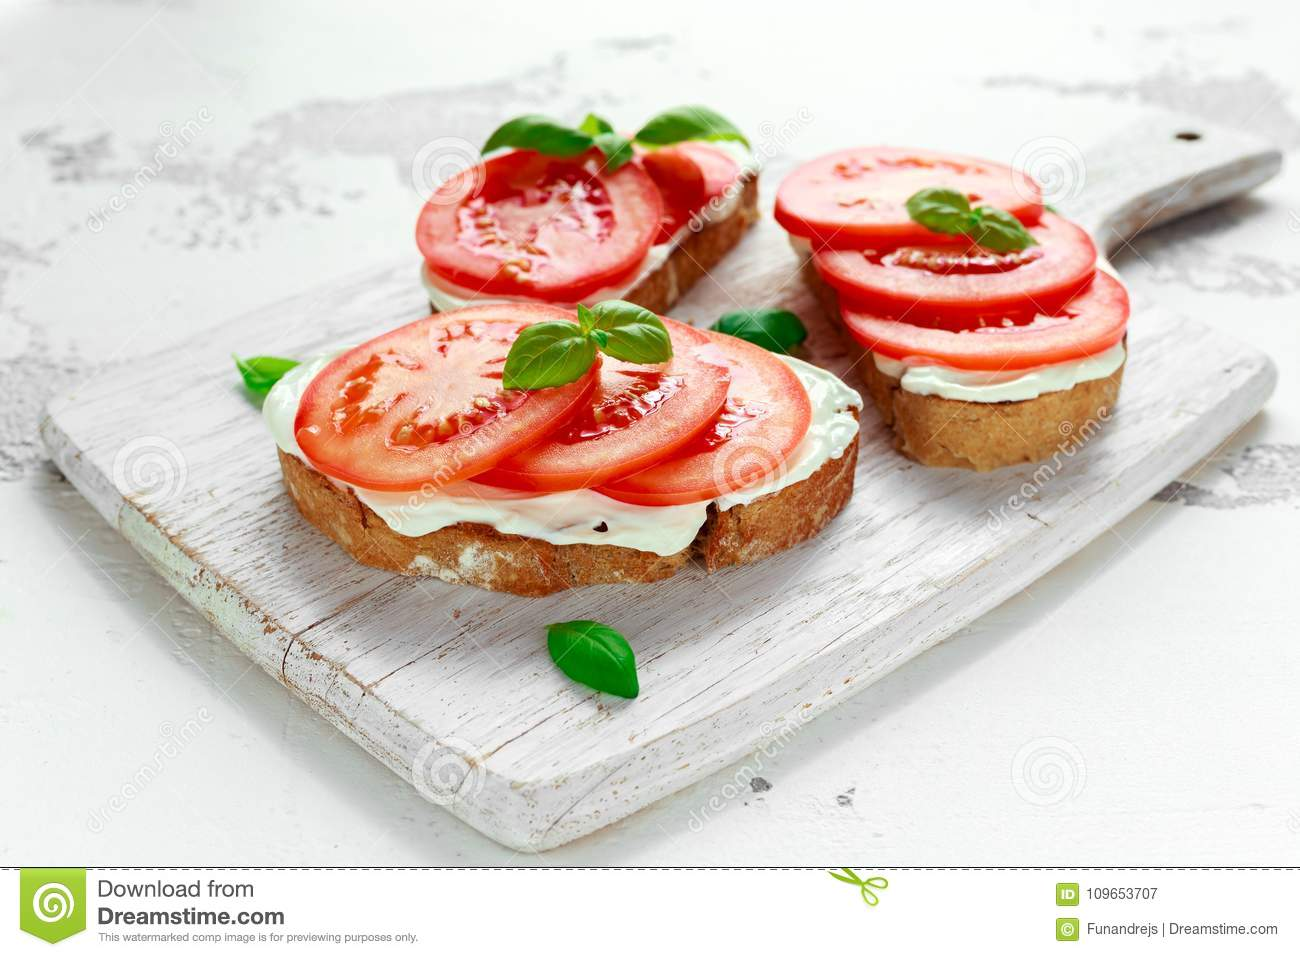 Bruschetta, toast with soft cheese, basil and tomatoes on a white wooden board. Italian healthy snack, food.